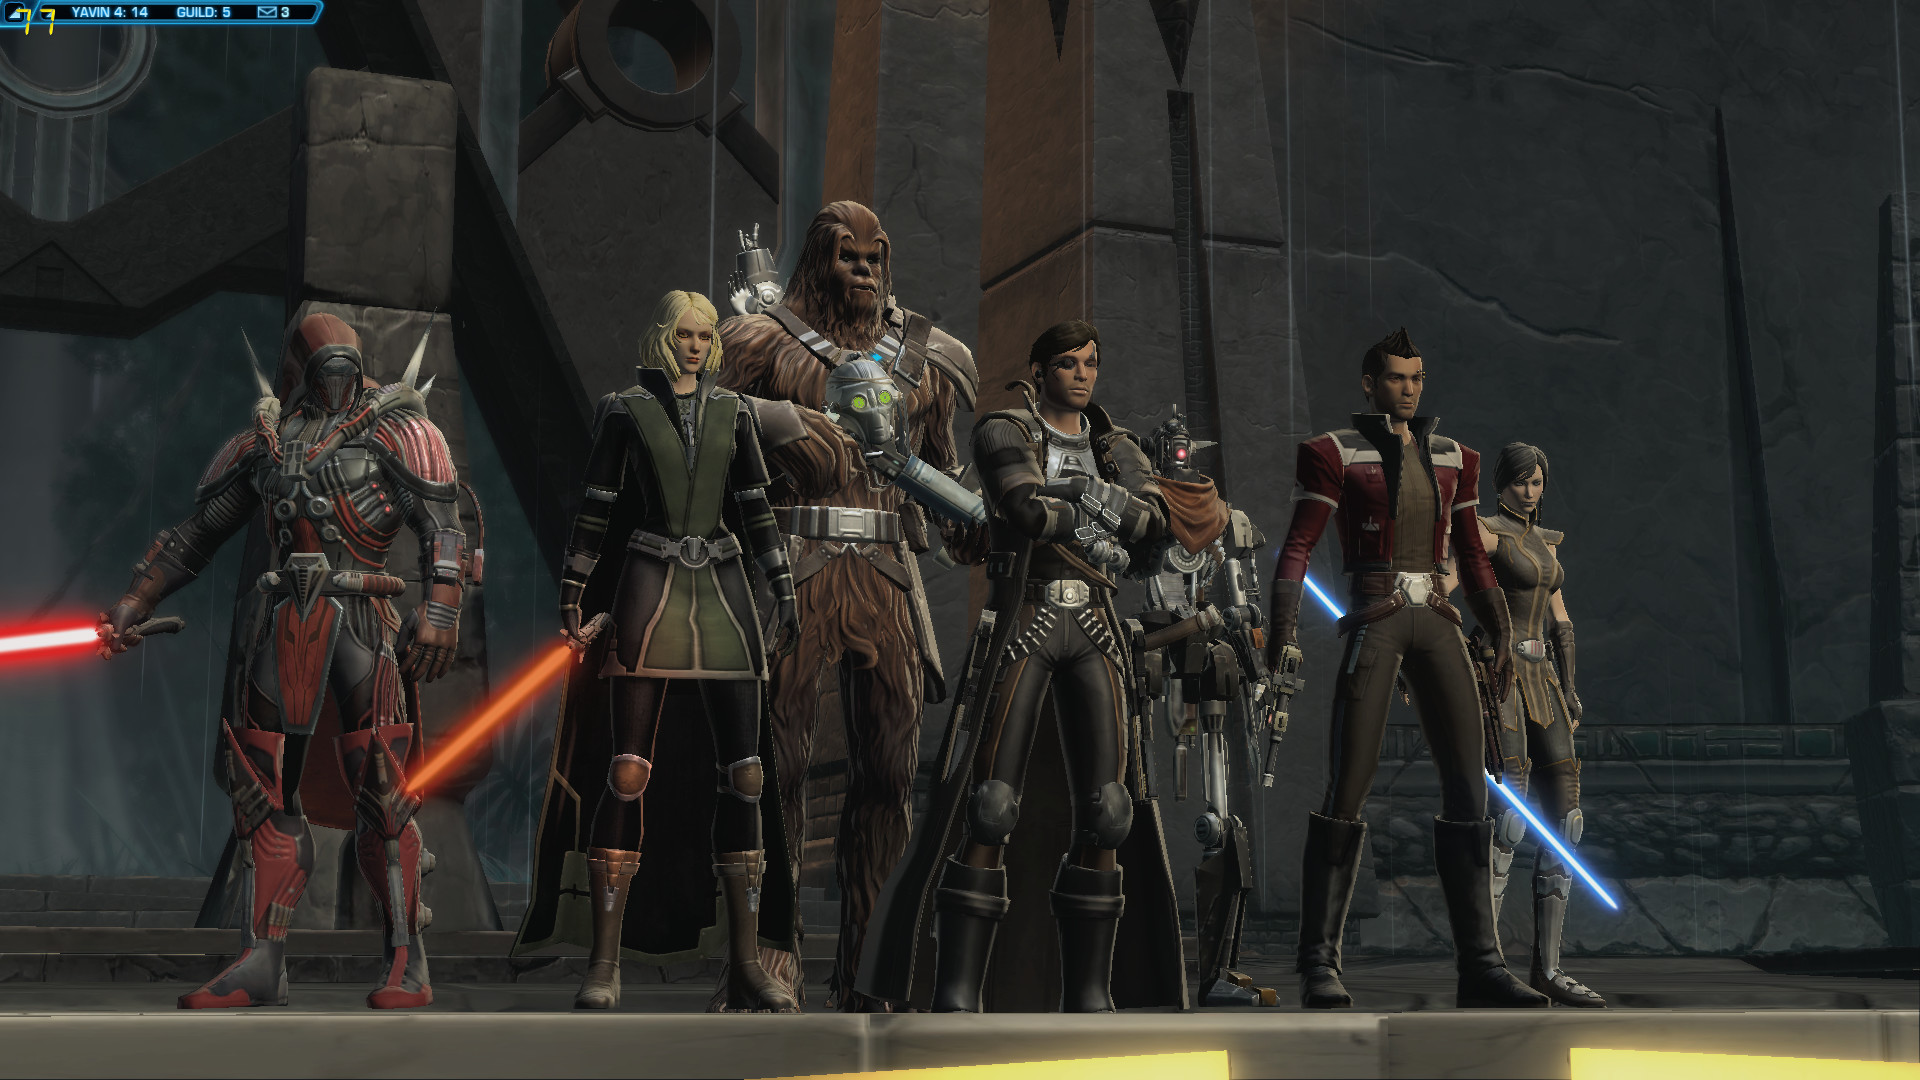 … Swtor: Captain Vergil and the Coalition by DanteDT34